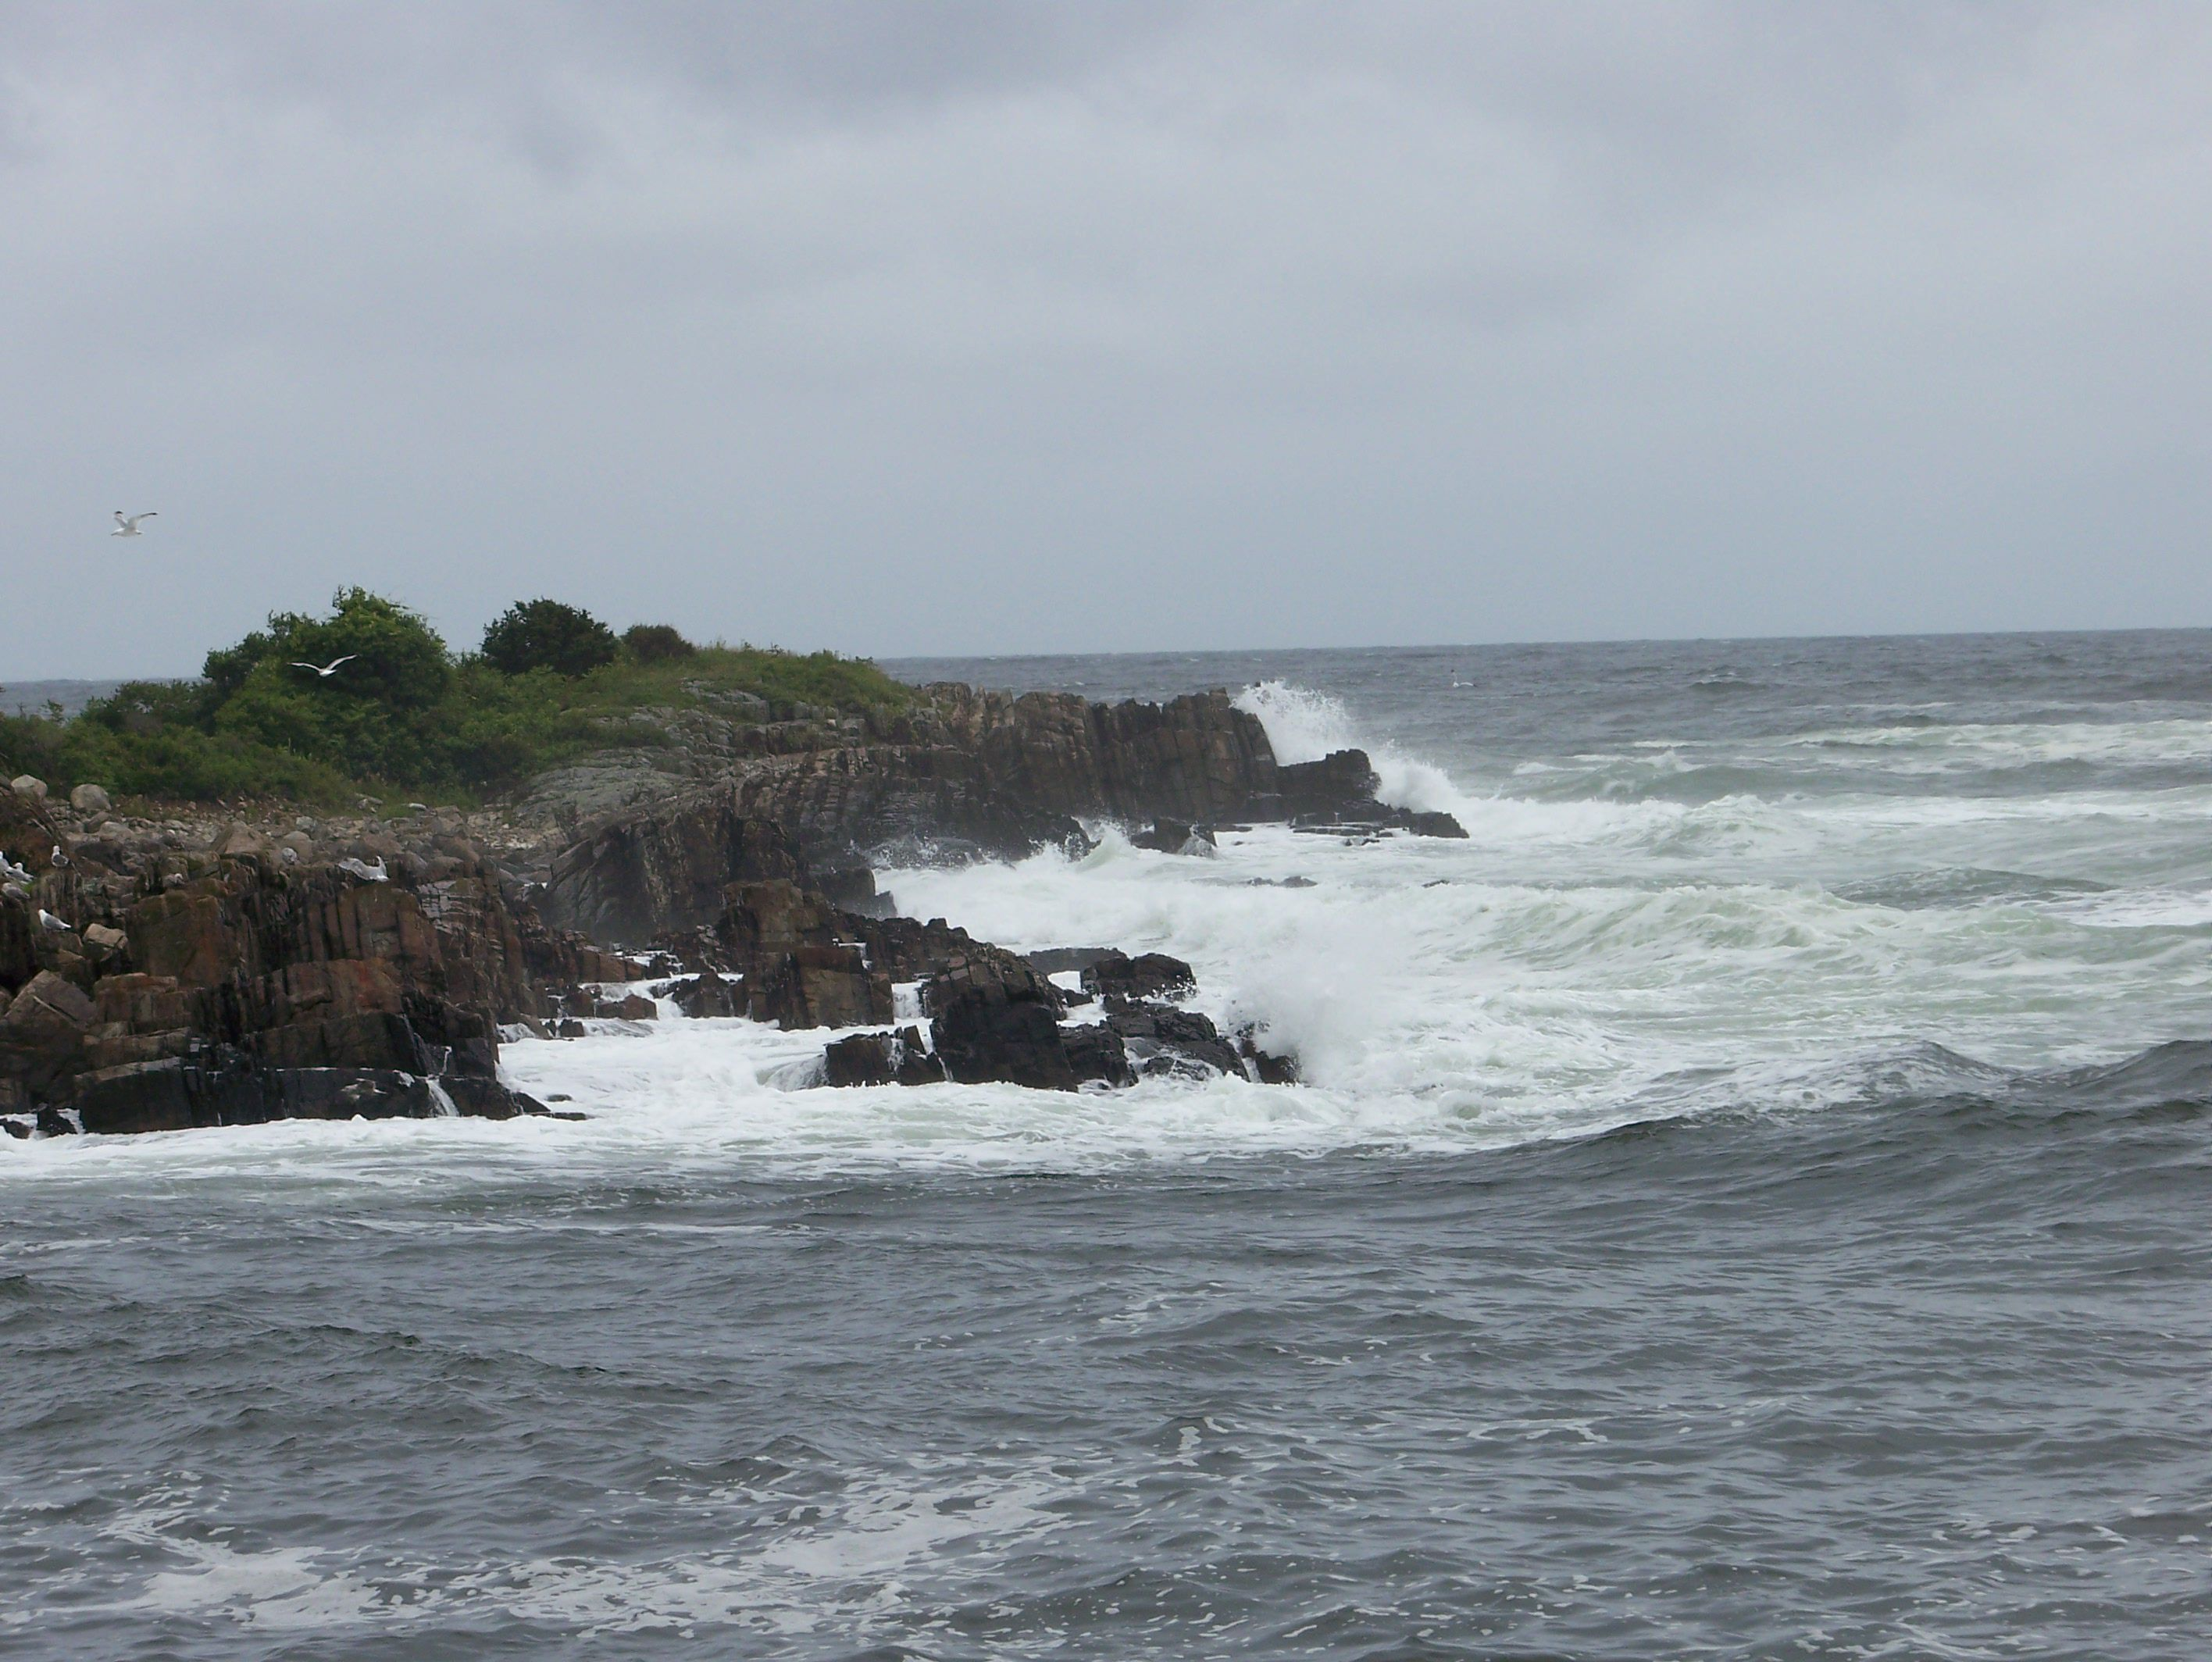 The Atlantic Ocean as seen from Maine